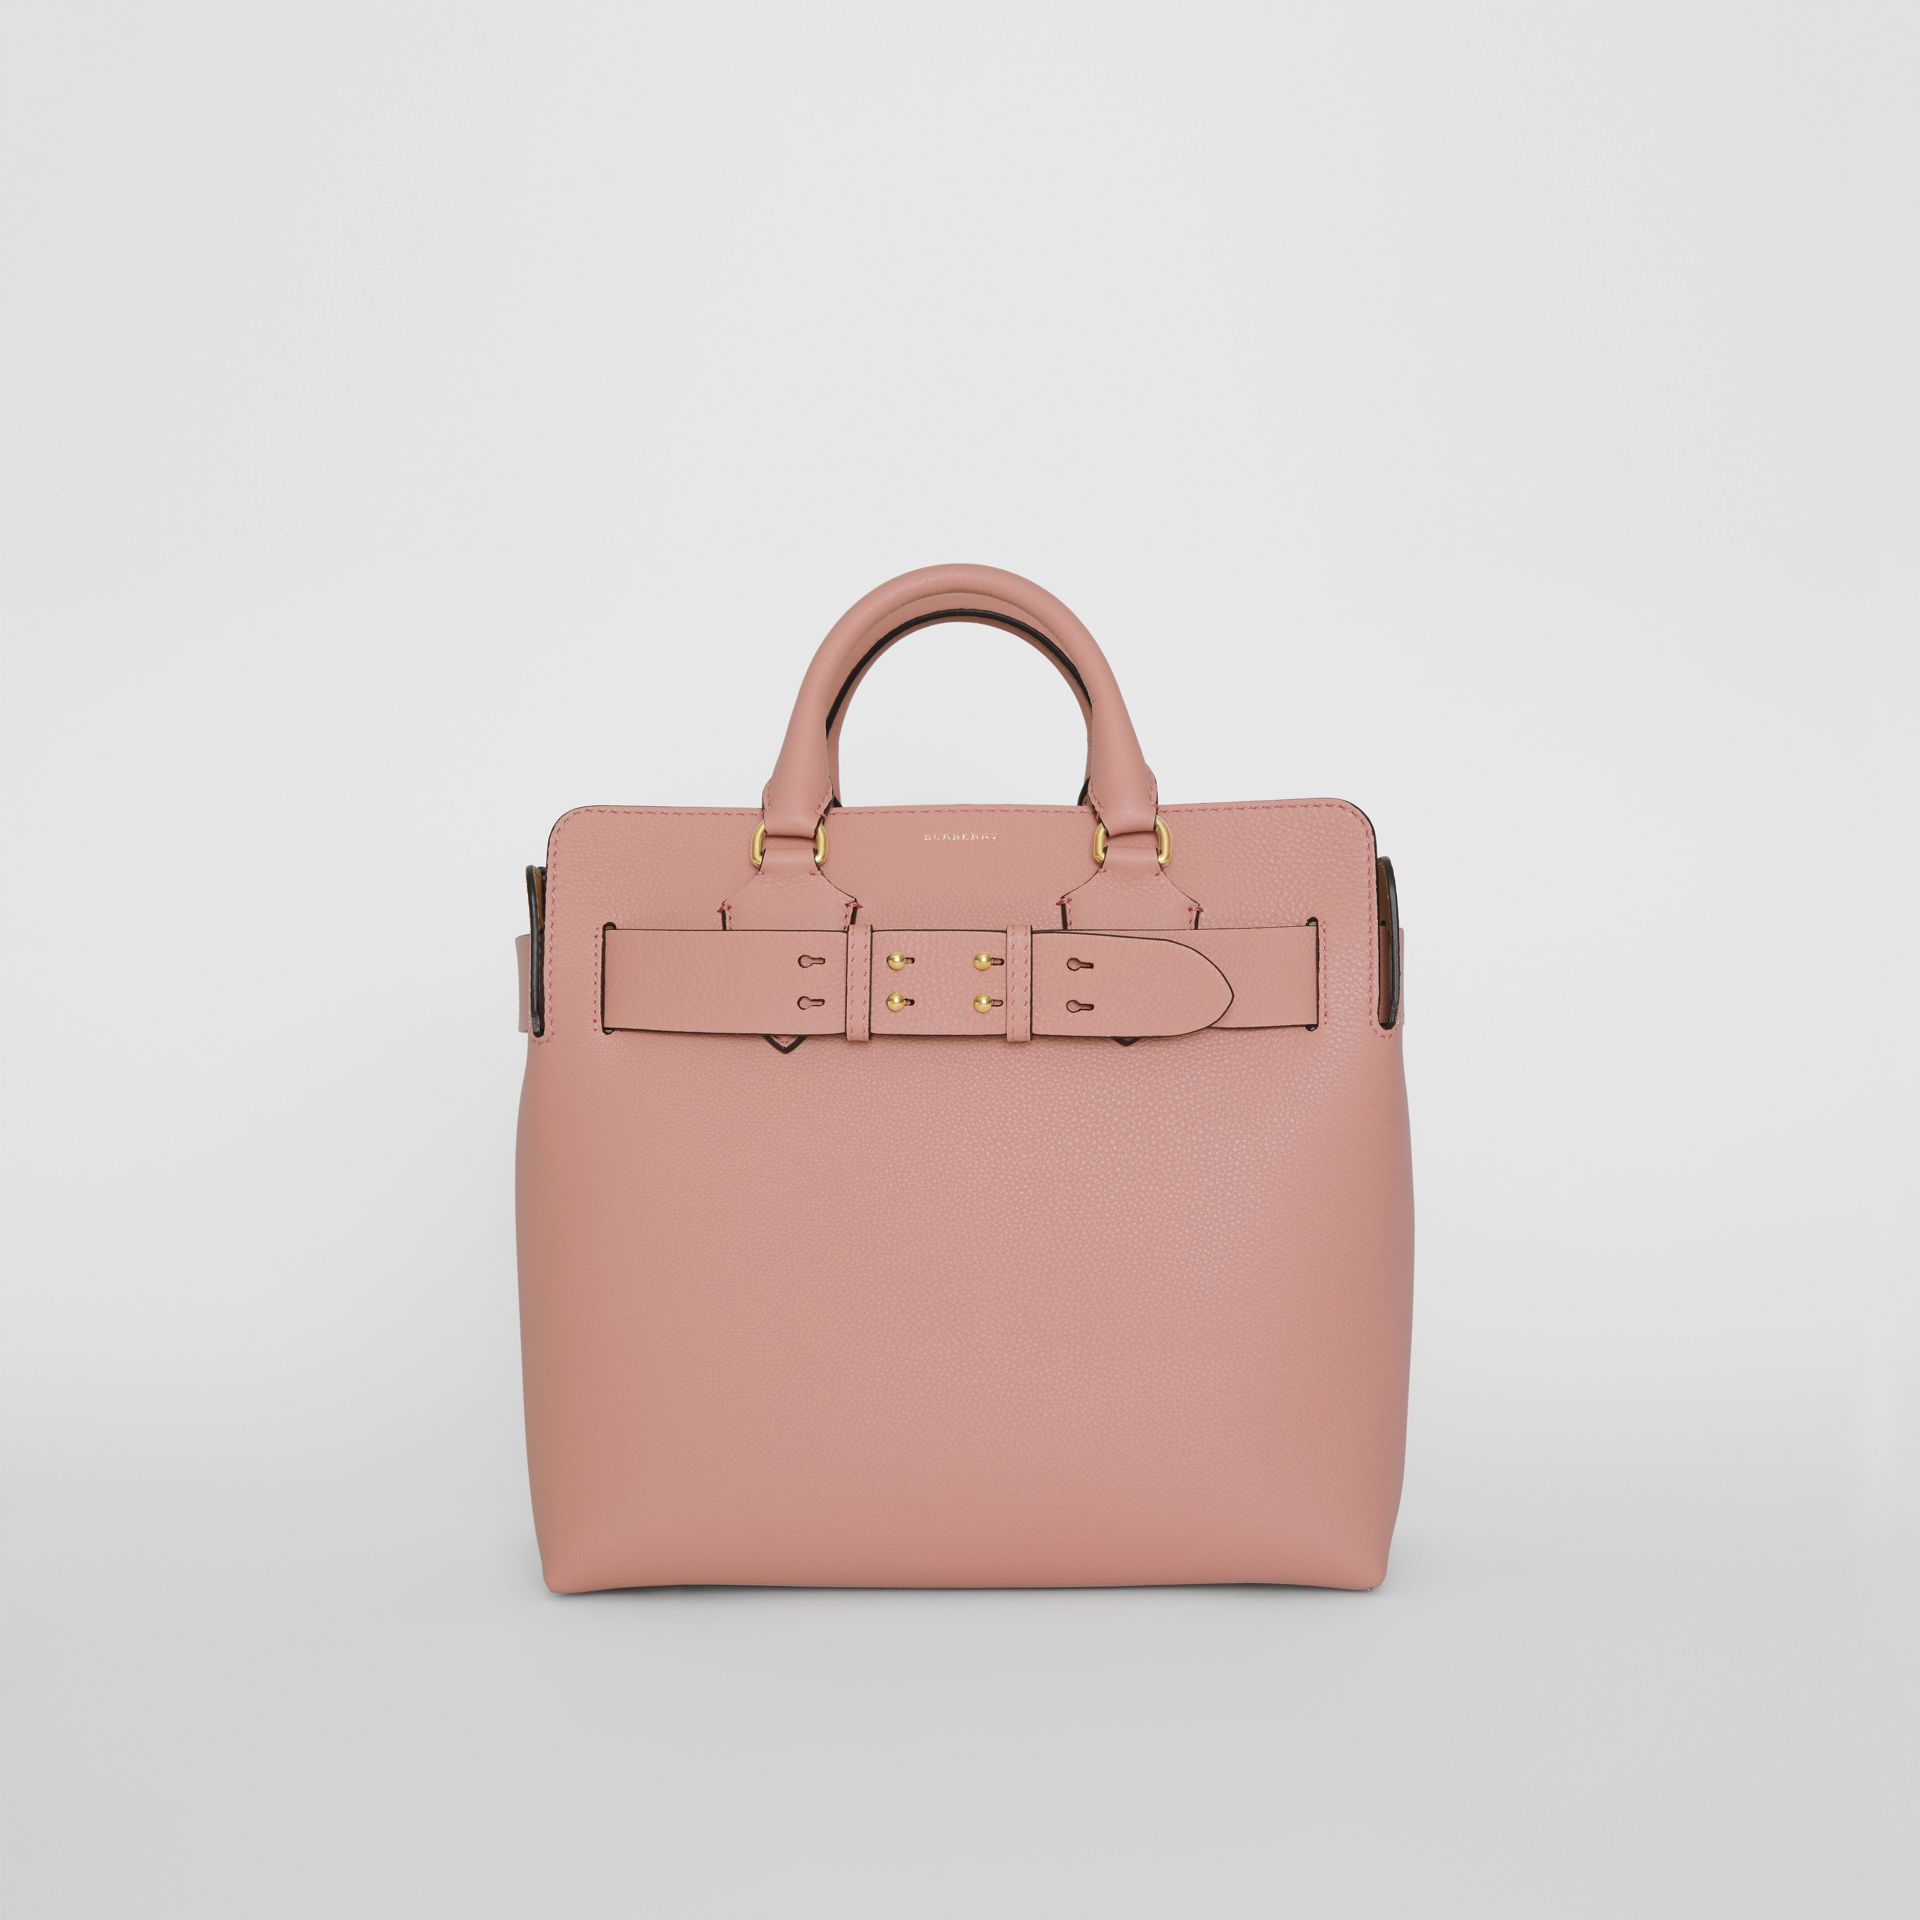 Sac The Belt moyen en cuir (Rose Platiné) - Femme | Burberry - photo de la galerie 0